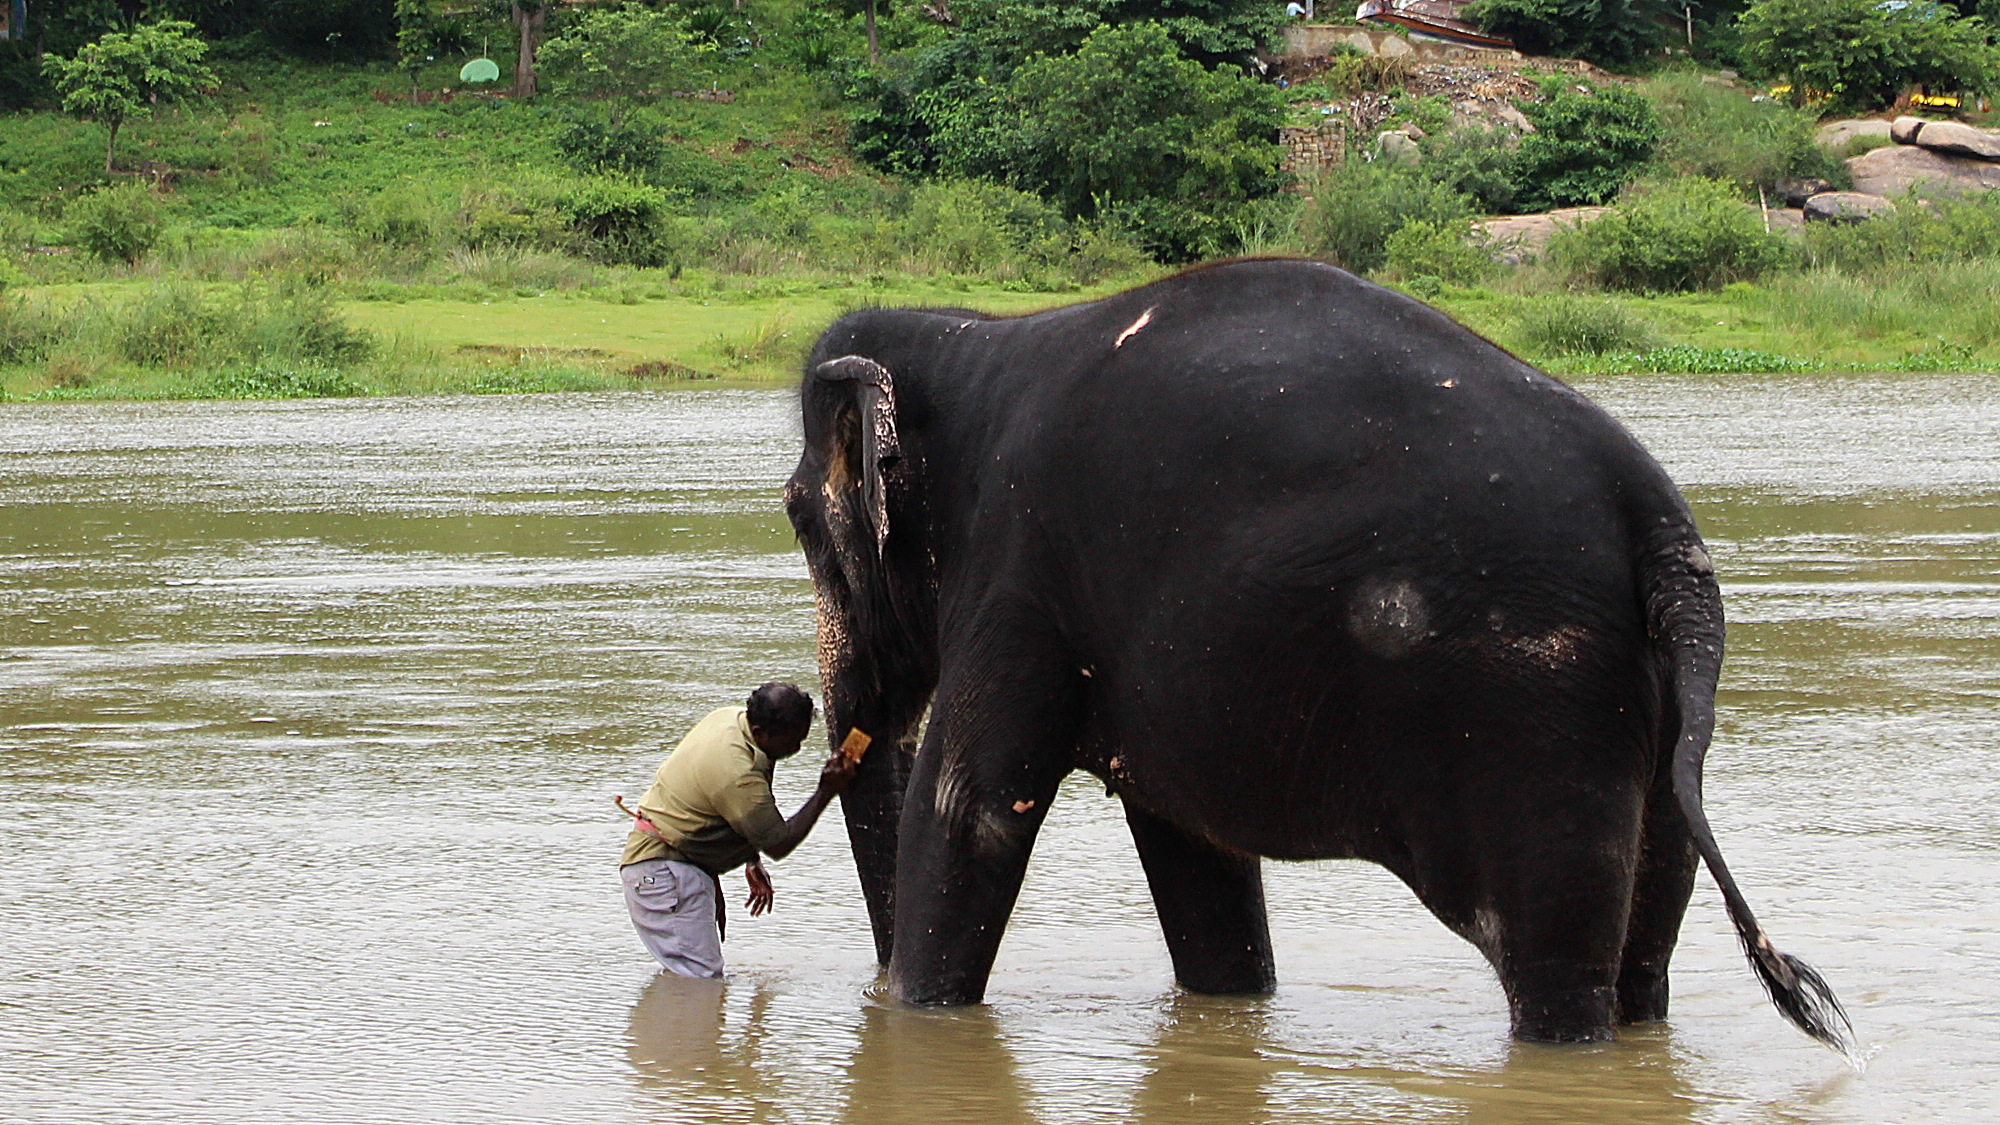 Lakshmi, the temple elephant of Virupaksha temple takes a bath every morning in the river in Hampi.